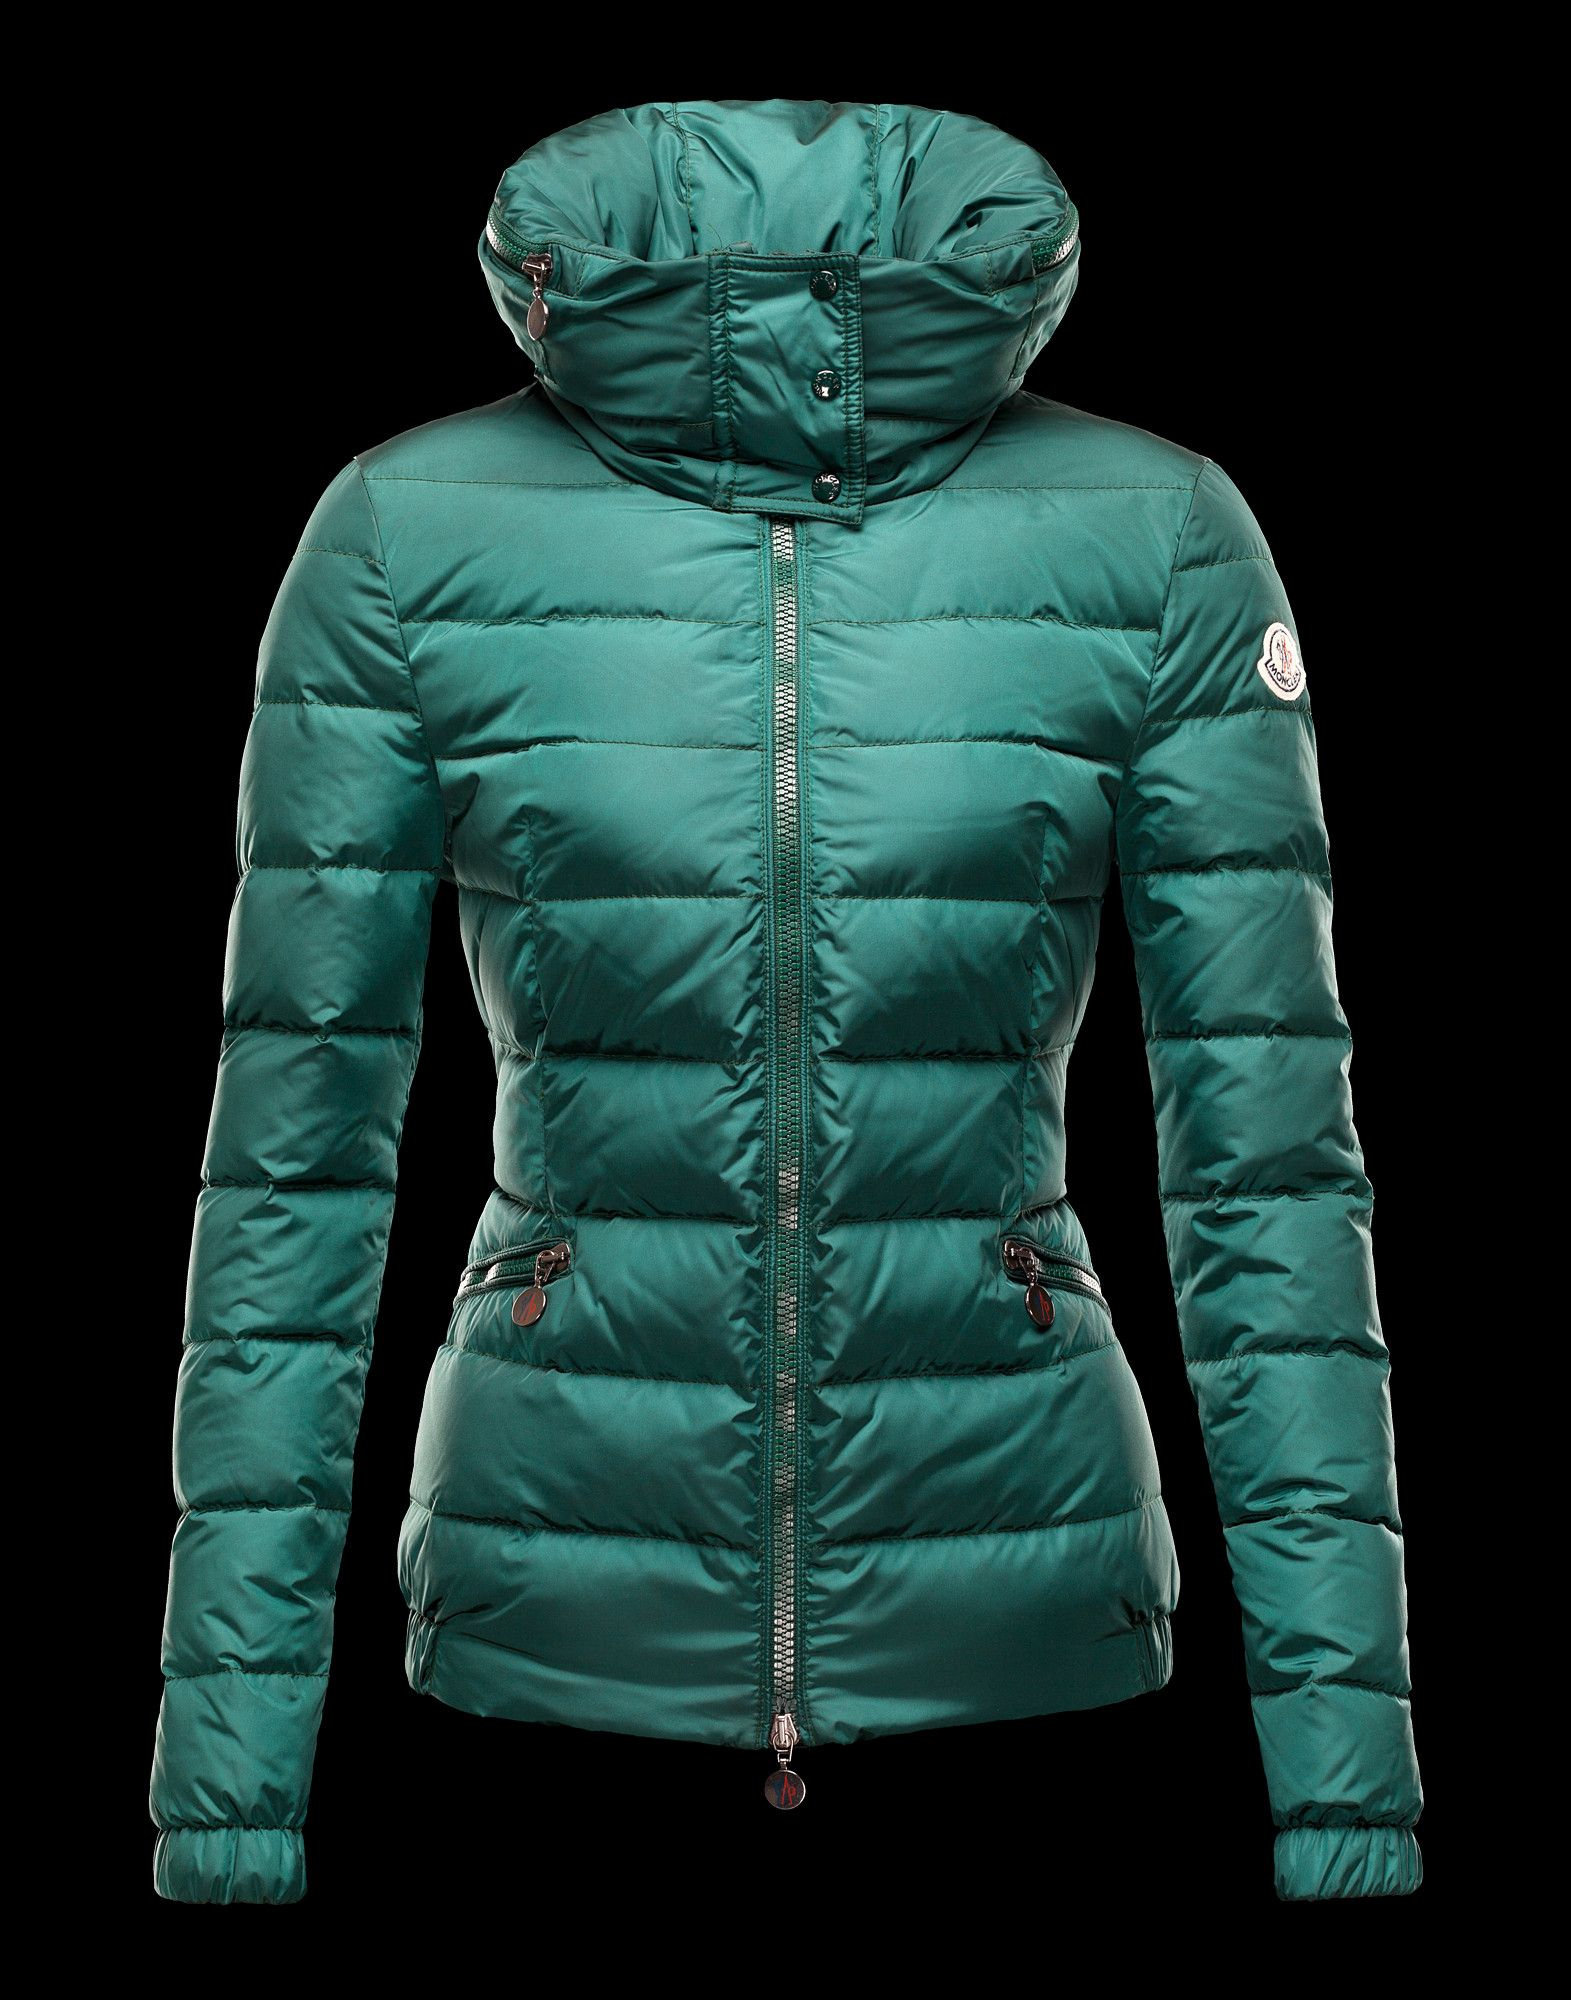 c309cda740a3 MONCLER Women - Fall Winter 12 - OUTERWEAR - Jacket - SANGLIER